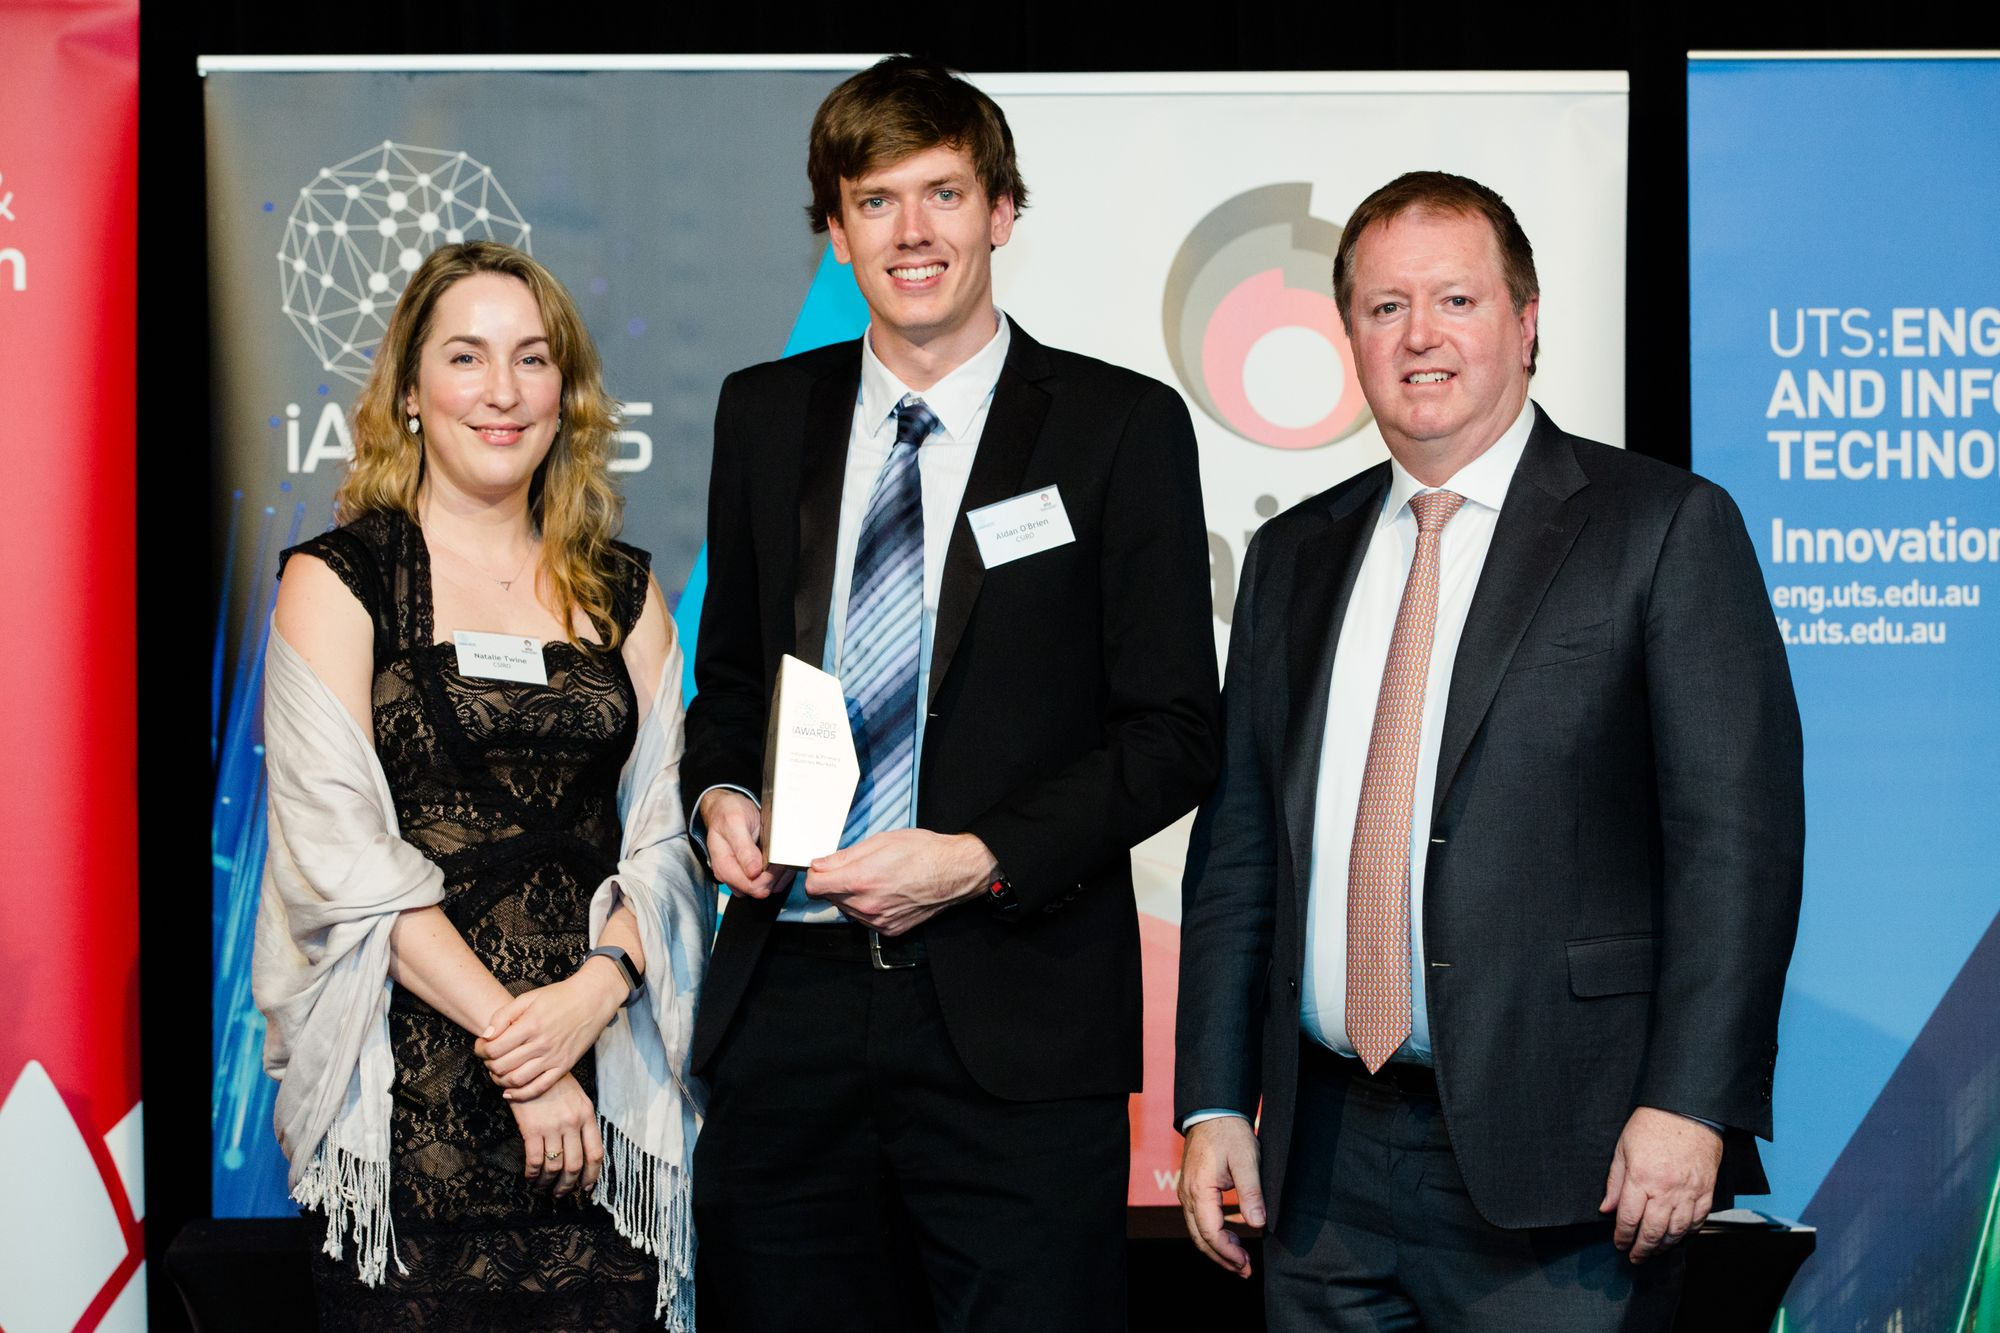 CSIRO awarded NSW iAward for GT-Scan Innovation